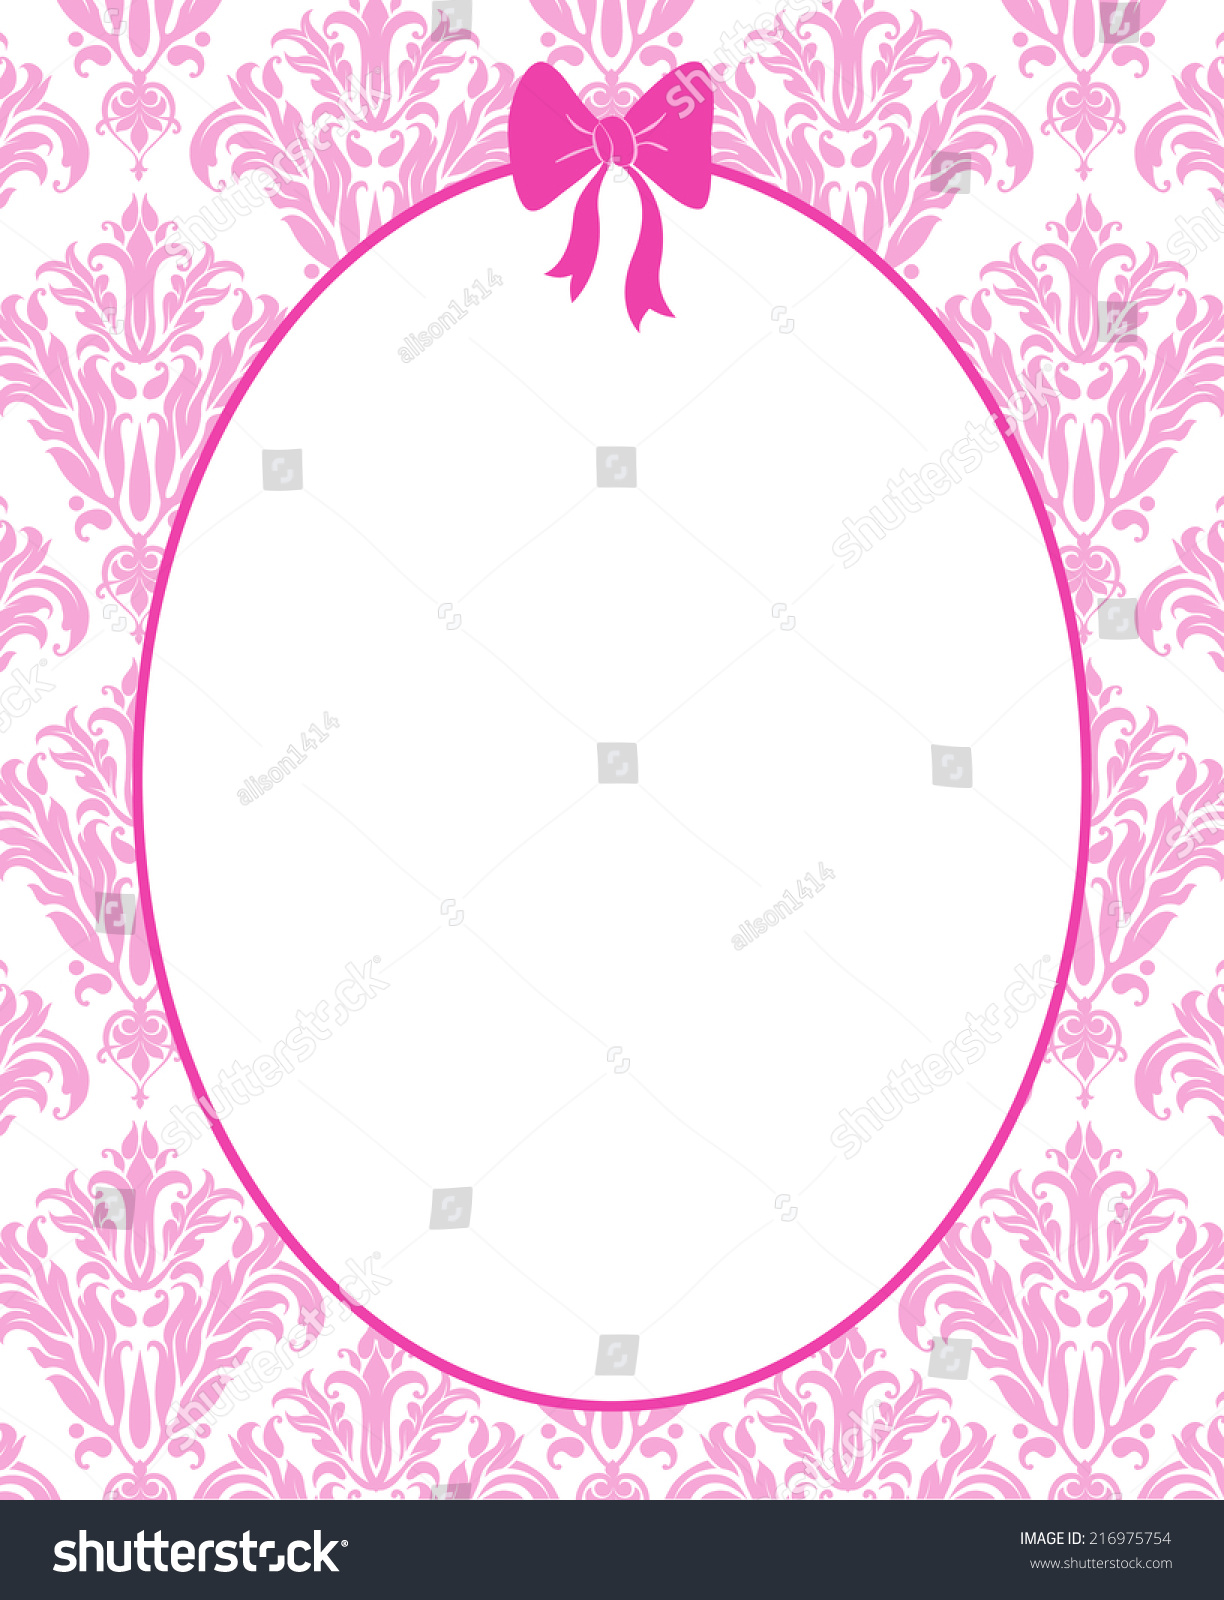 Cute Pink Frame Mirror Hot Pink Stock Illustration 216975754 ...